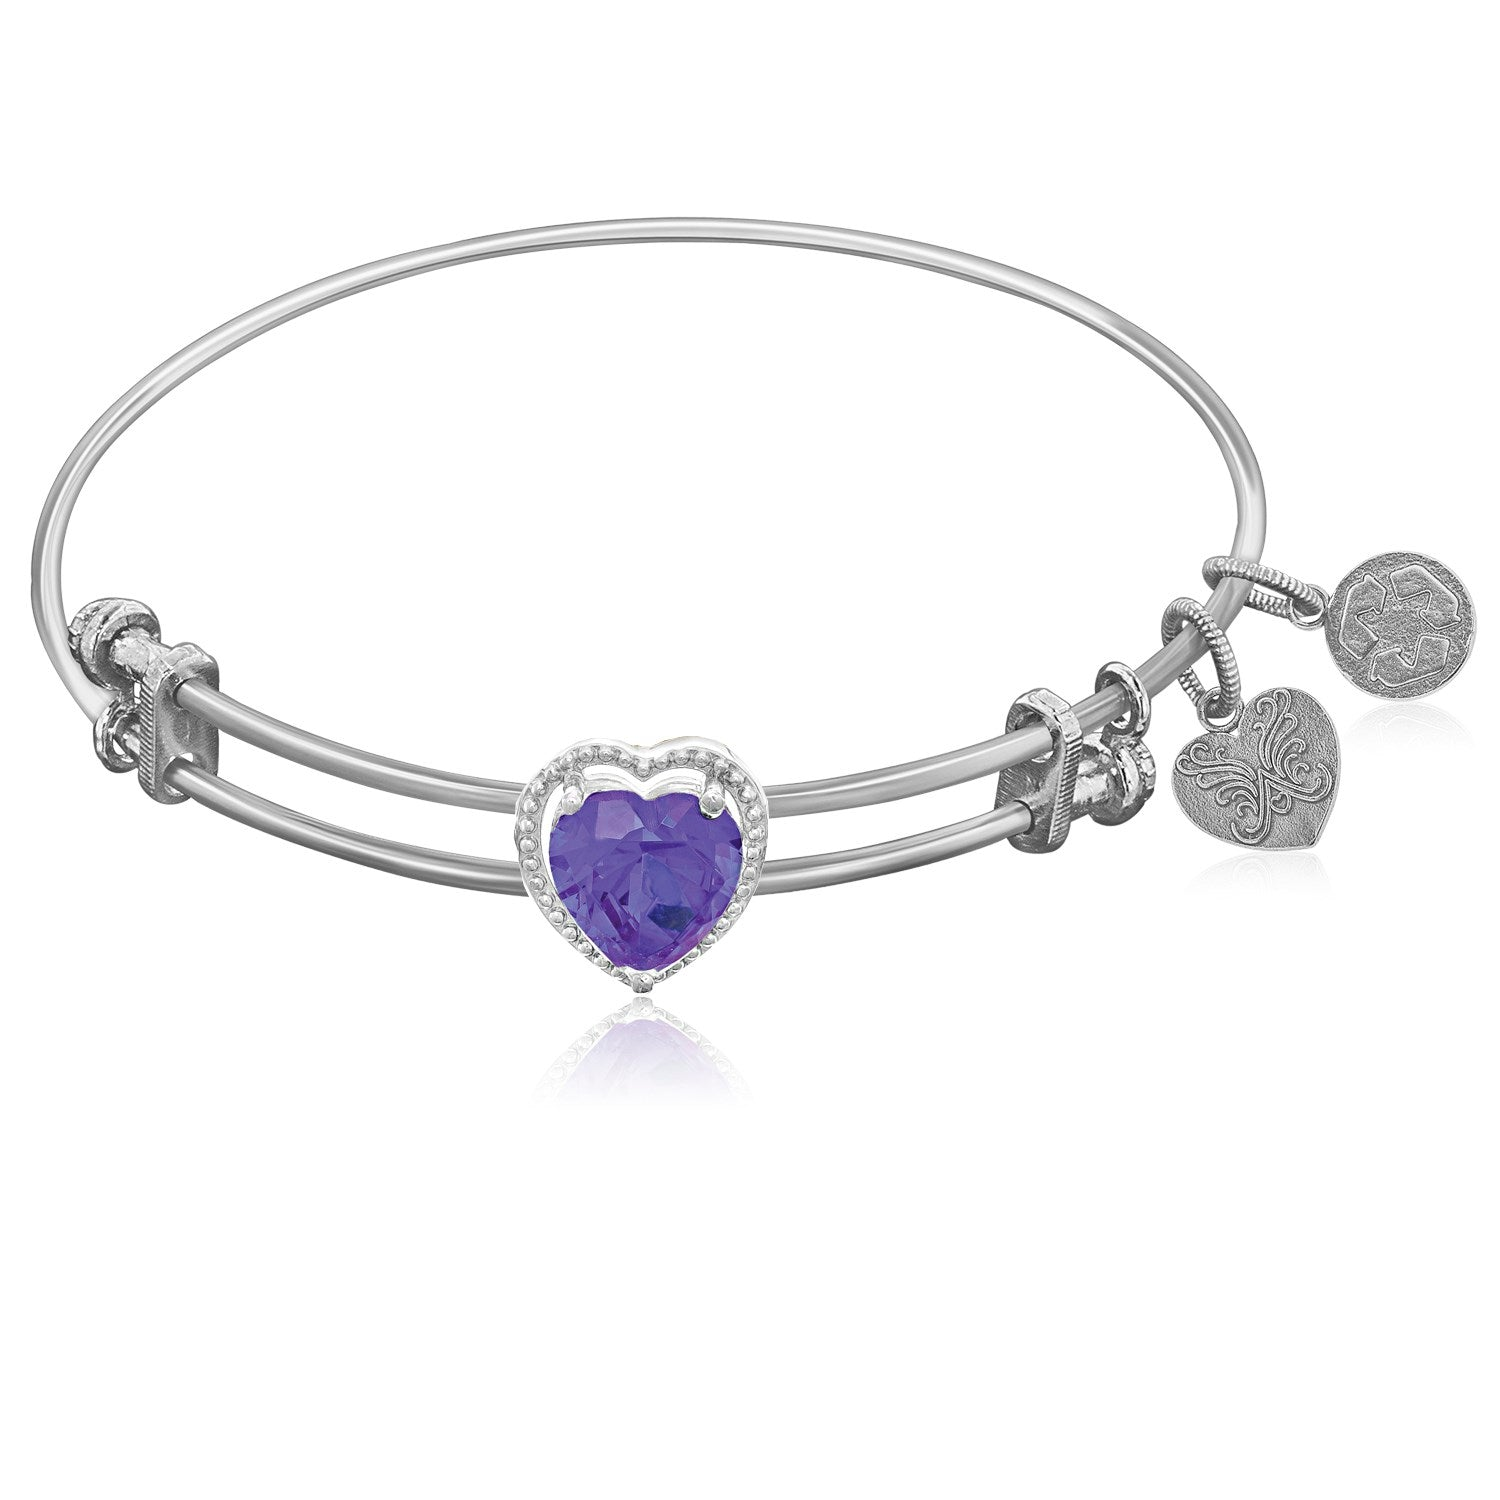 Expandable White Tone Brass Bangle with Purple CZ Heart Symbol